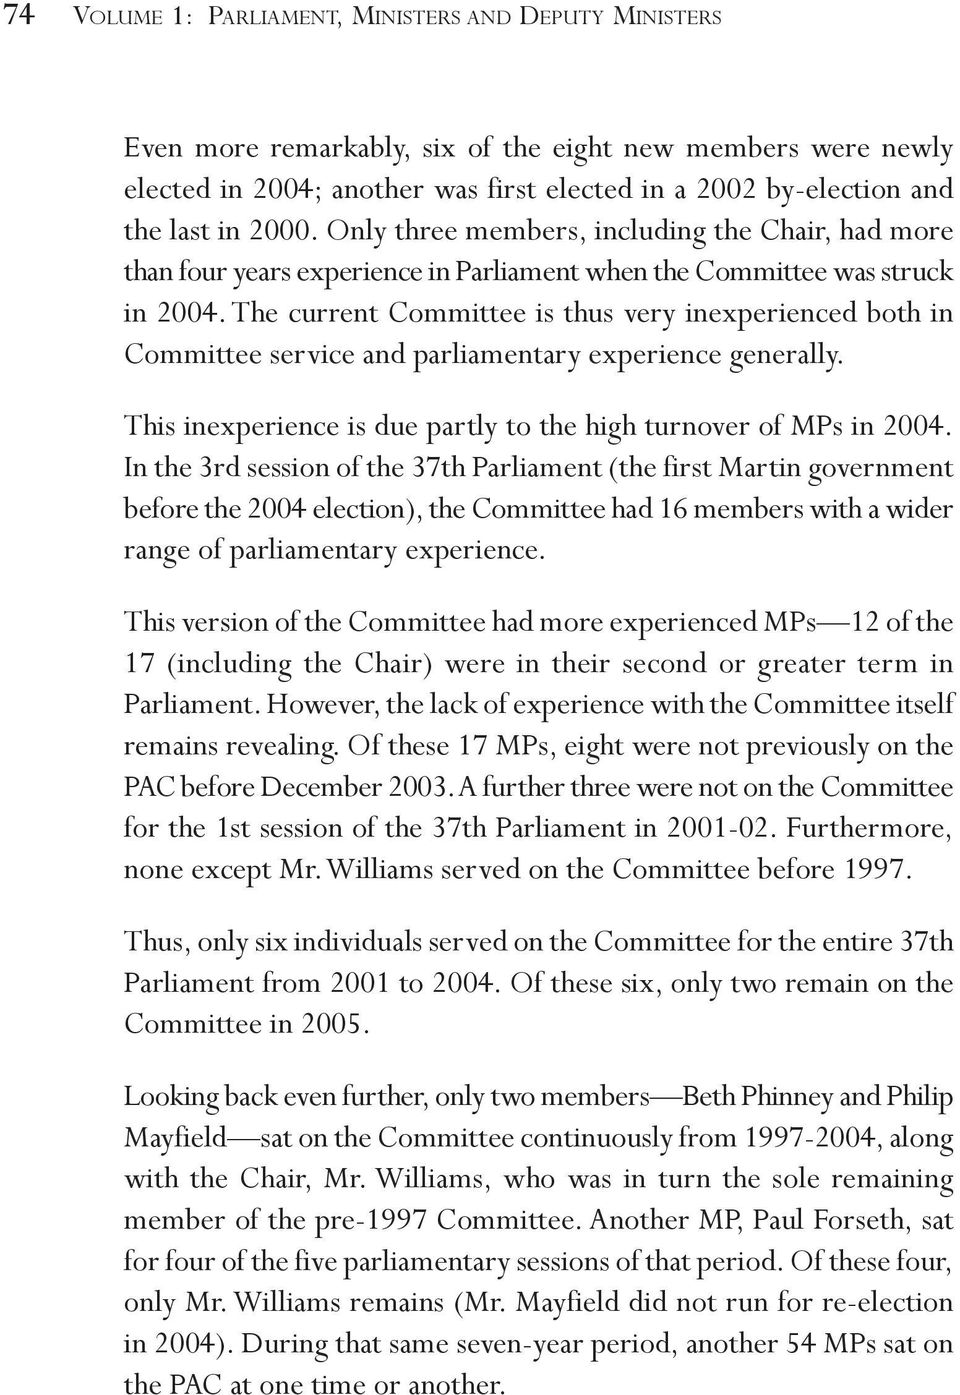 The current Committee is thus very inexperienced both in Committee service and parliamentary experience generally. This inexperience is due partly to the high turnover of MPs in 2004.